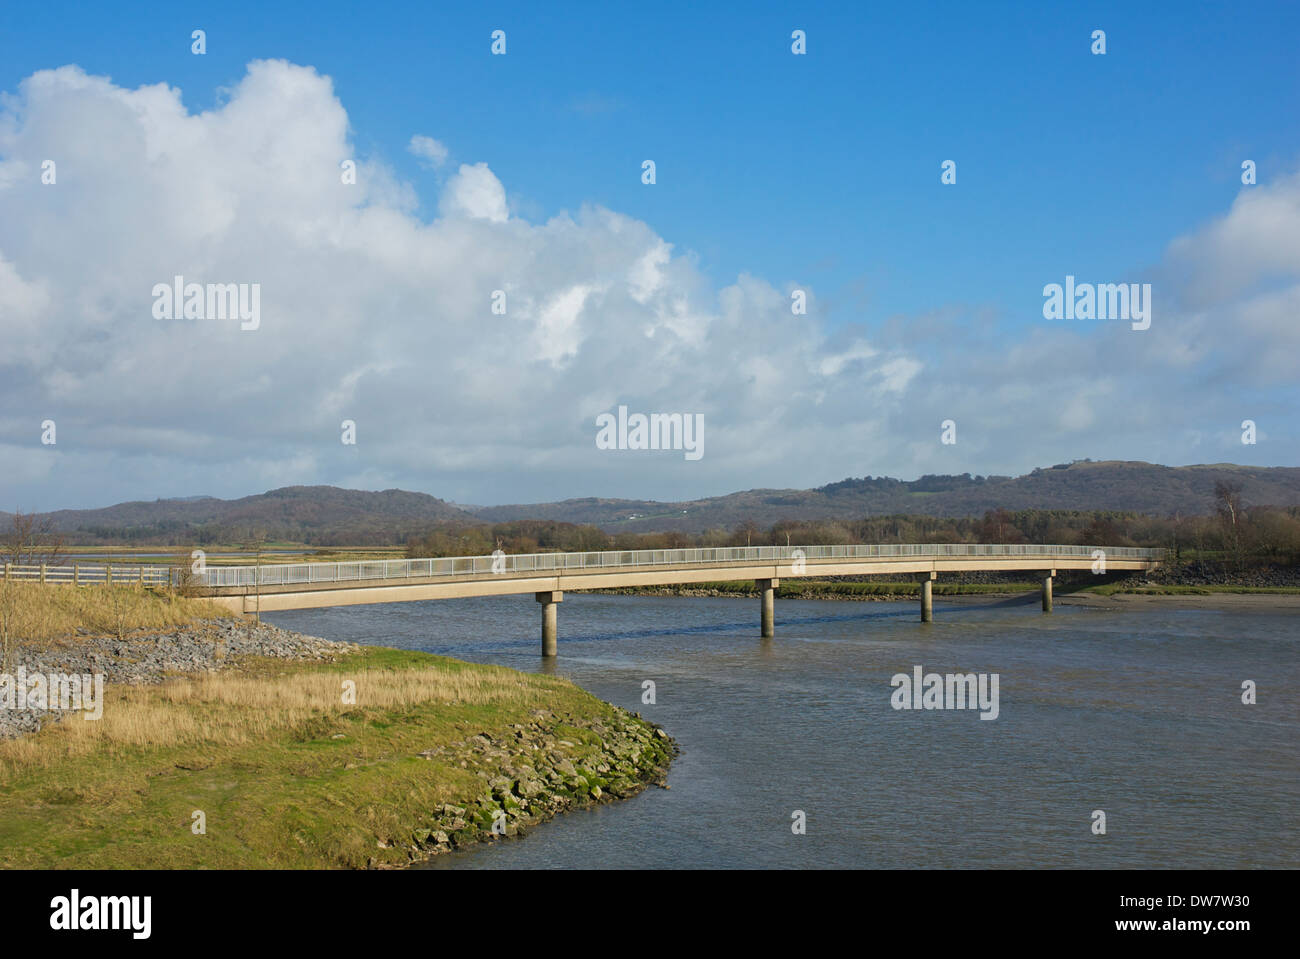 Footbridge over tidal estuary - River Leven - at Greenodd, South Lakeland, Cumbria, England UK Stock Photo